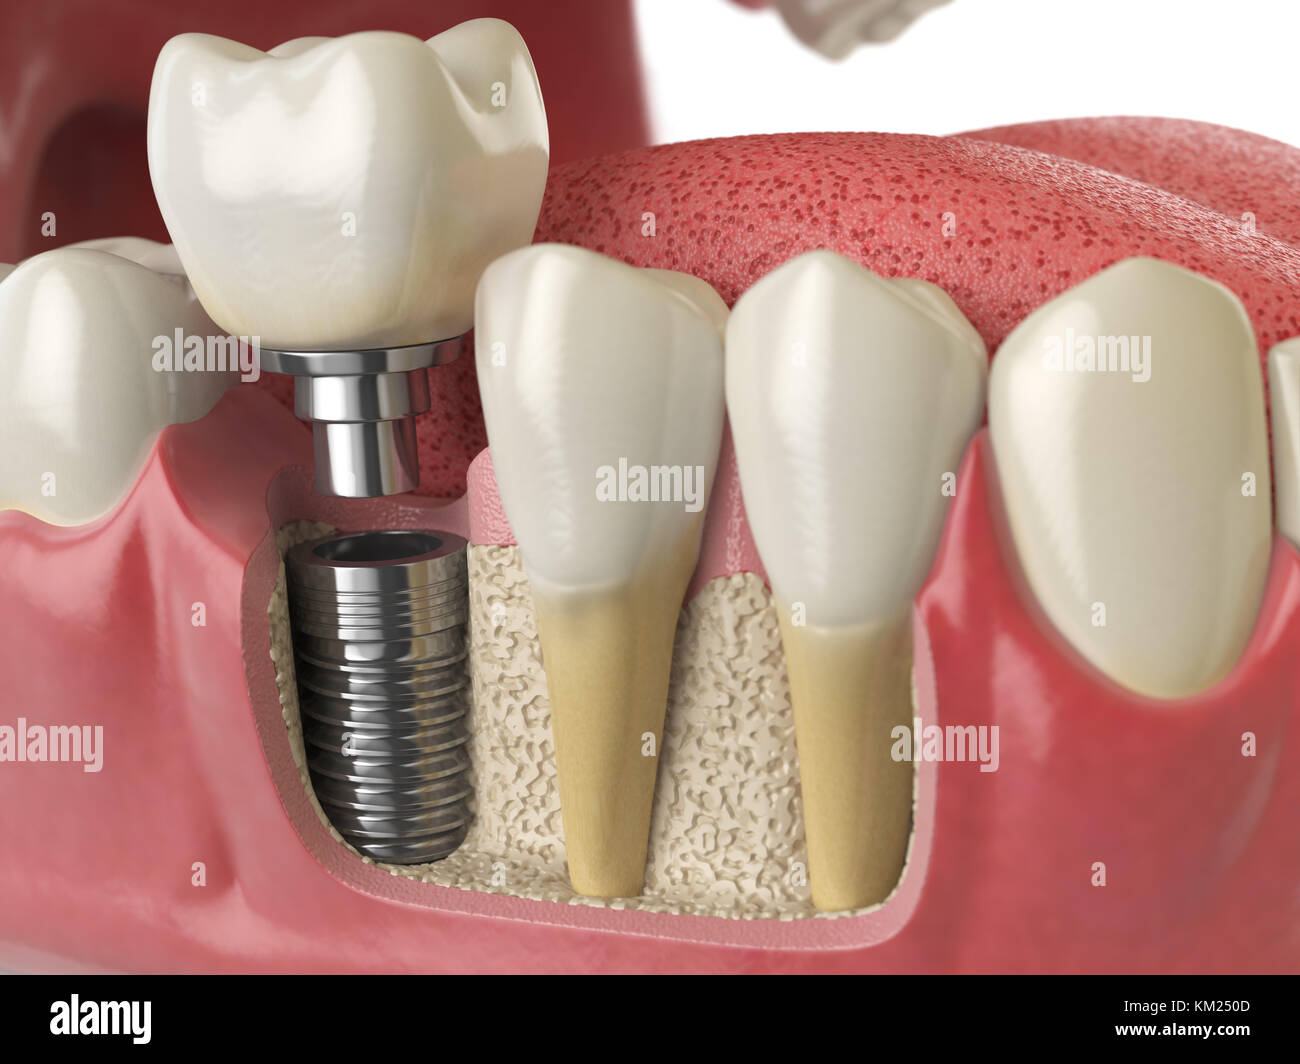 Anatomy of healthy teeth and tooth dental implant in human dentura ...